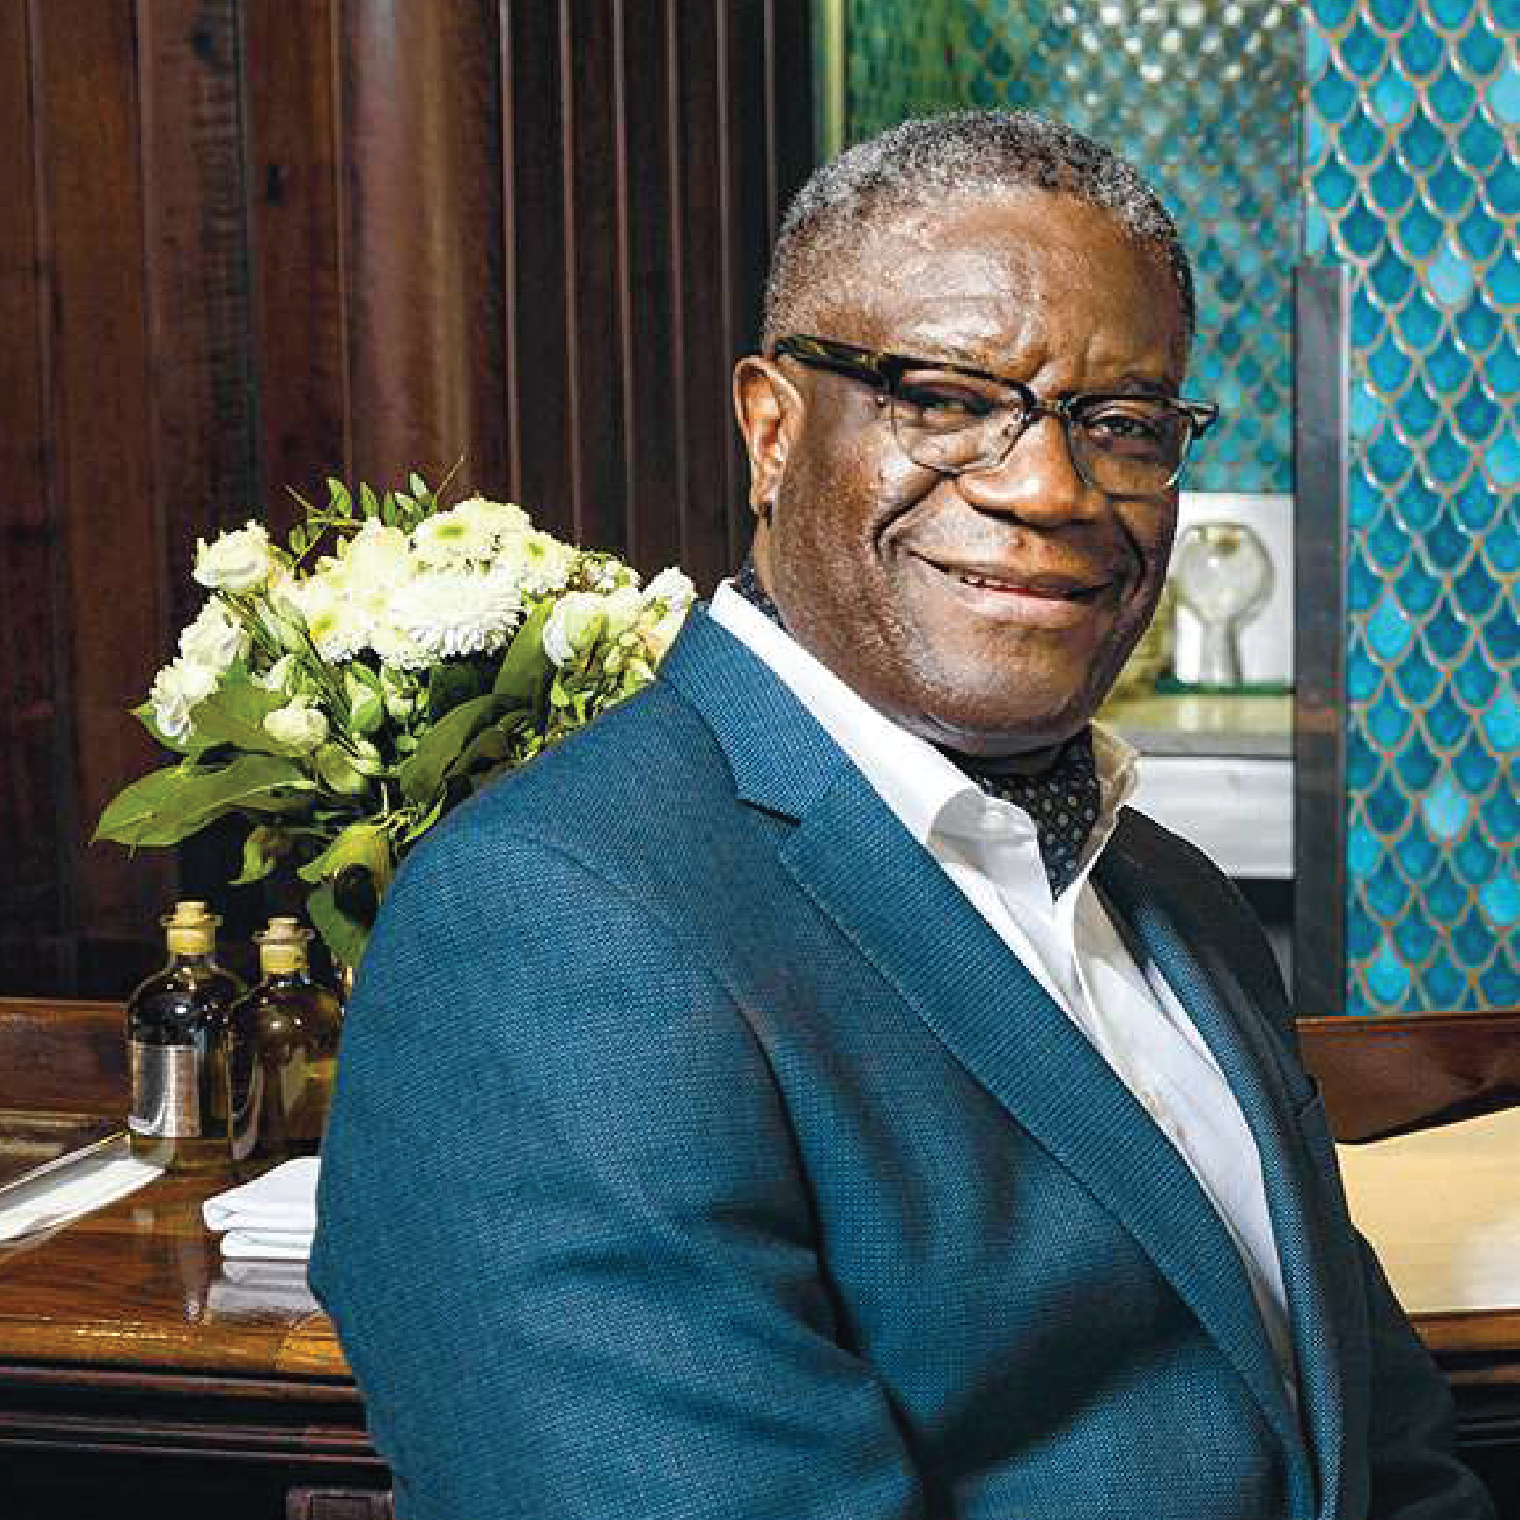 DR. DENIS MUKWEGE (Nobel Price 2018)